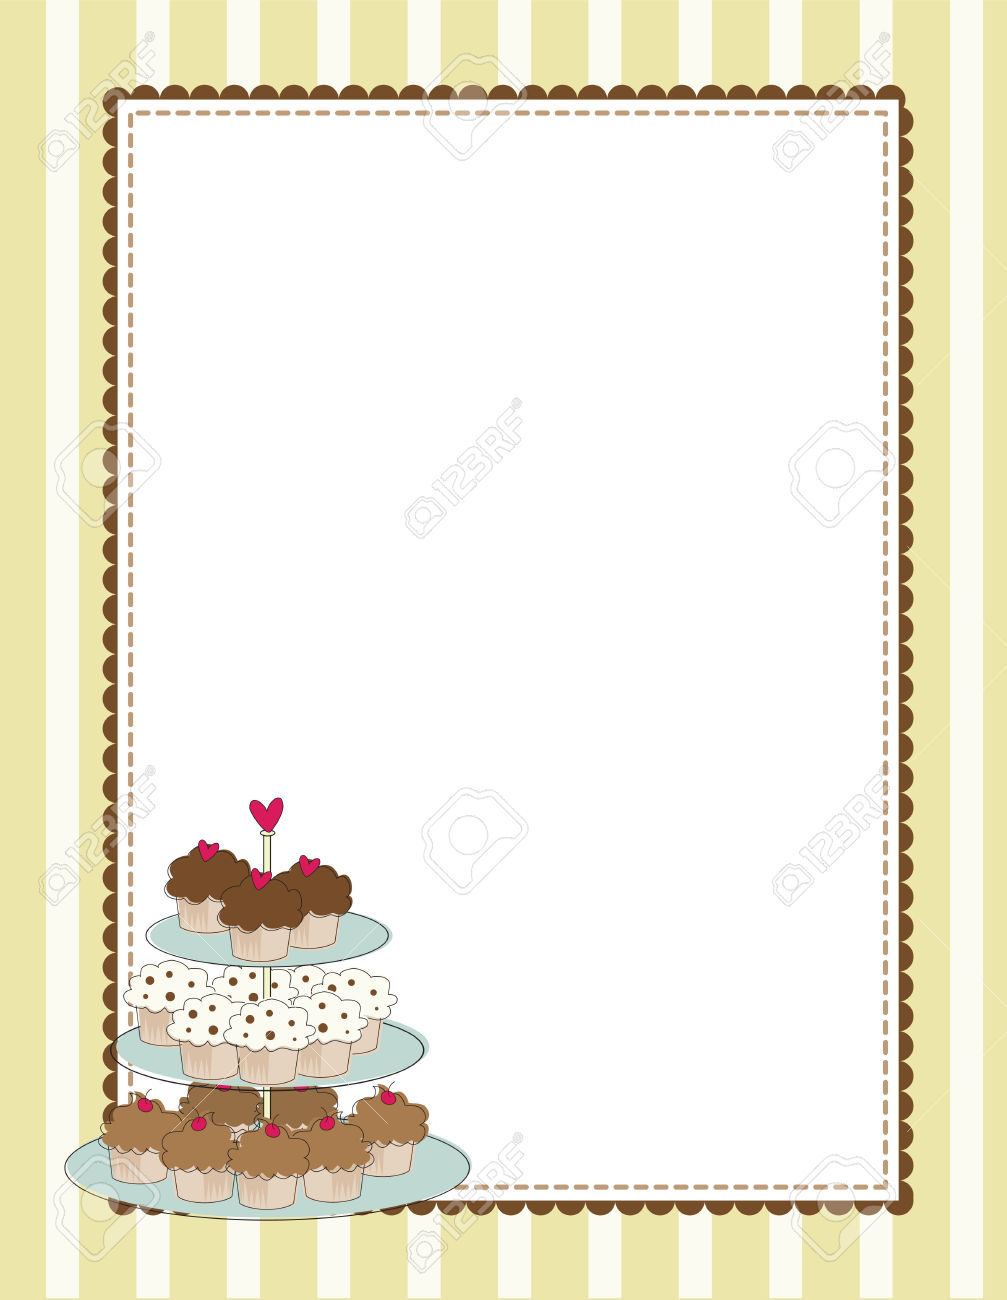 Breakfast clipart boarder Muffin Borders Muffin cliparts Clipart